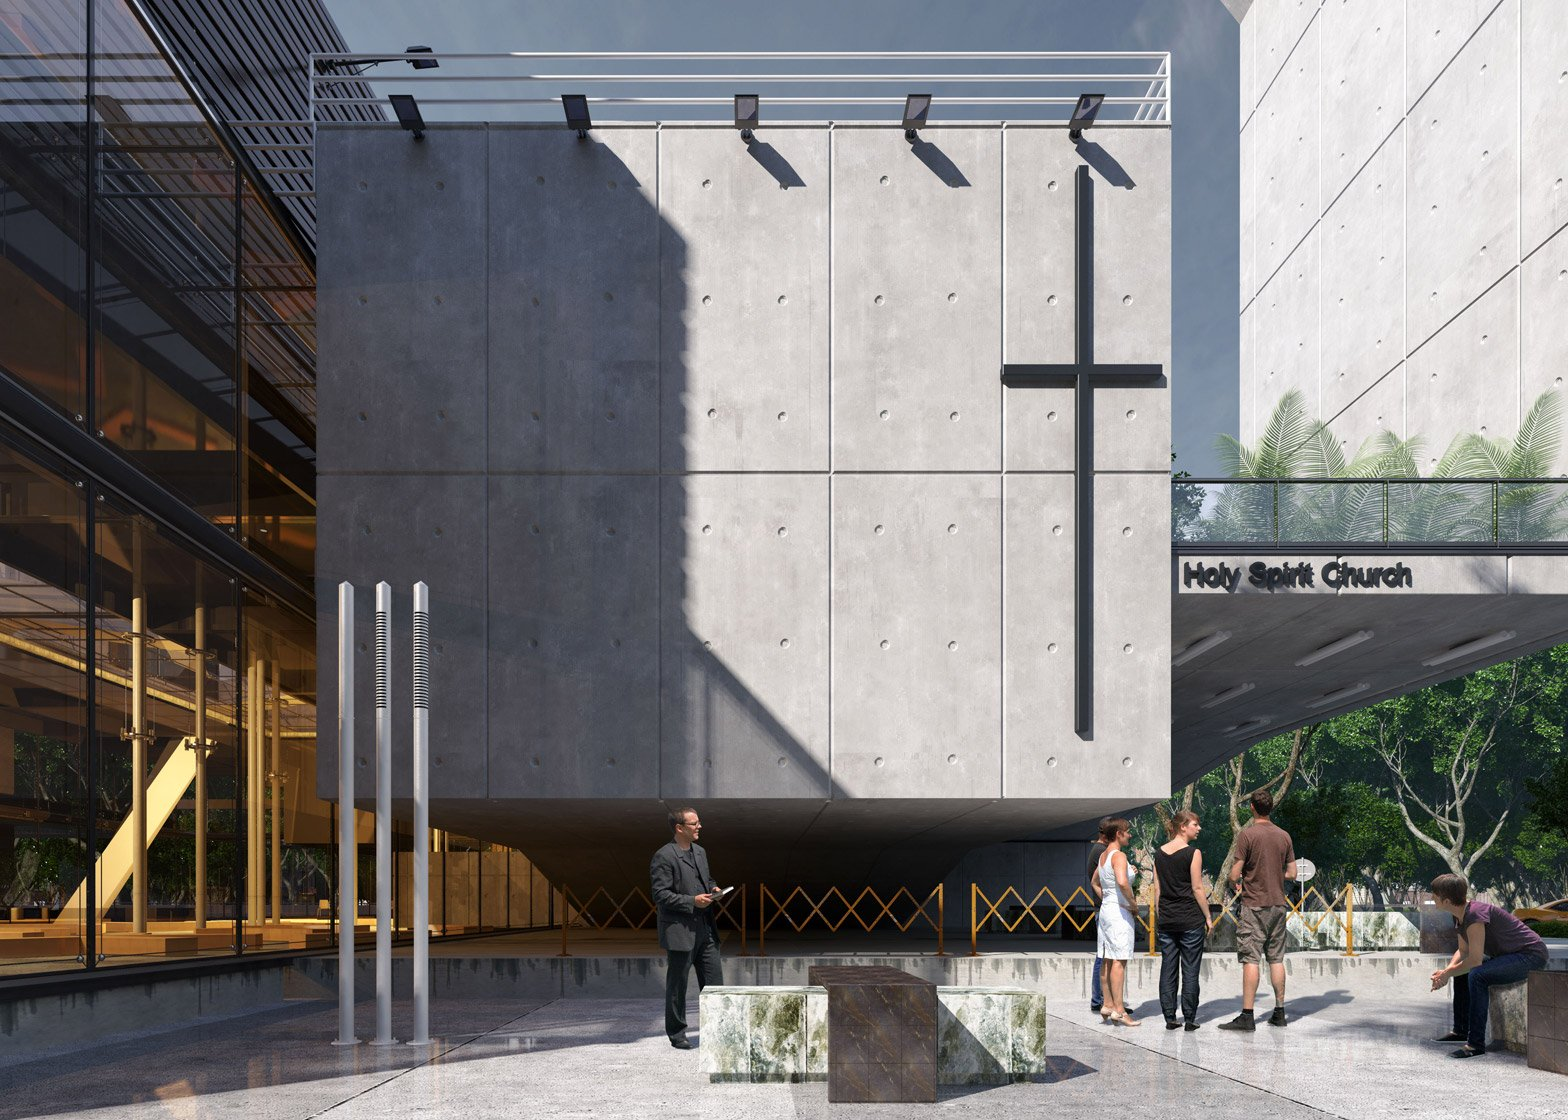 Church of Holy Spirit by Urban Office Architecture